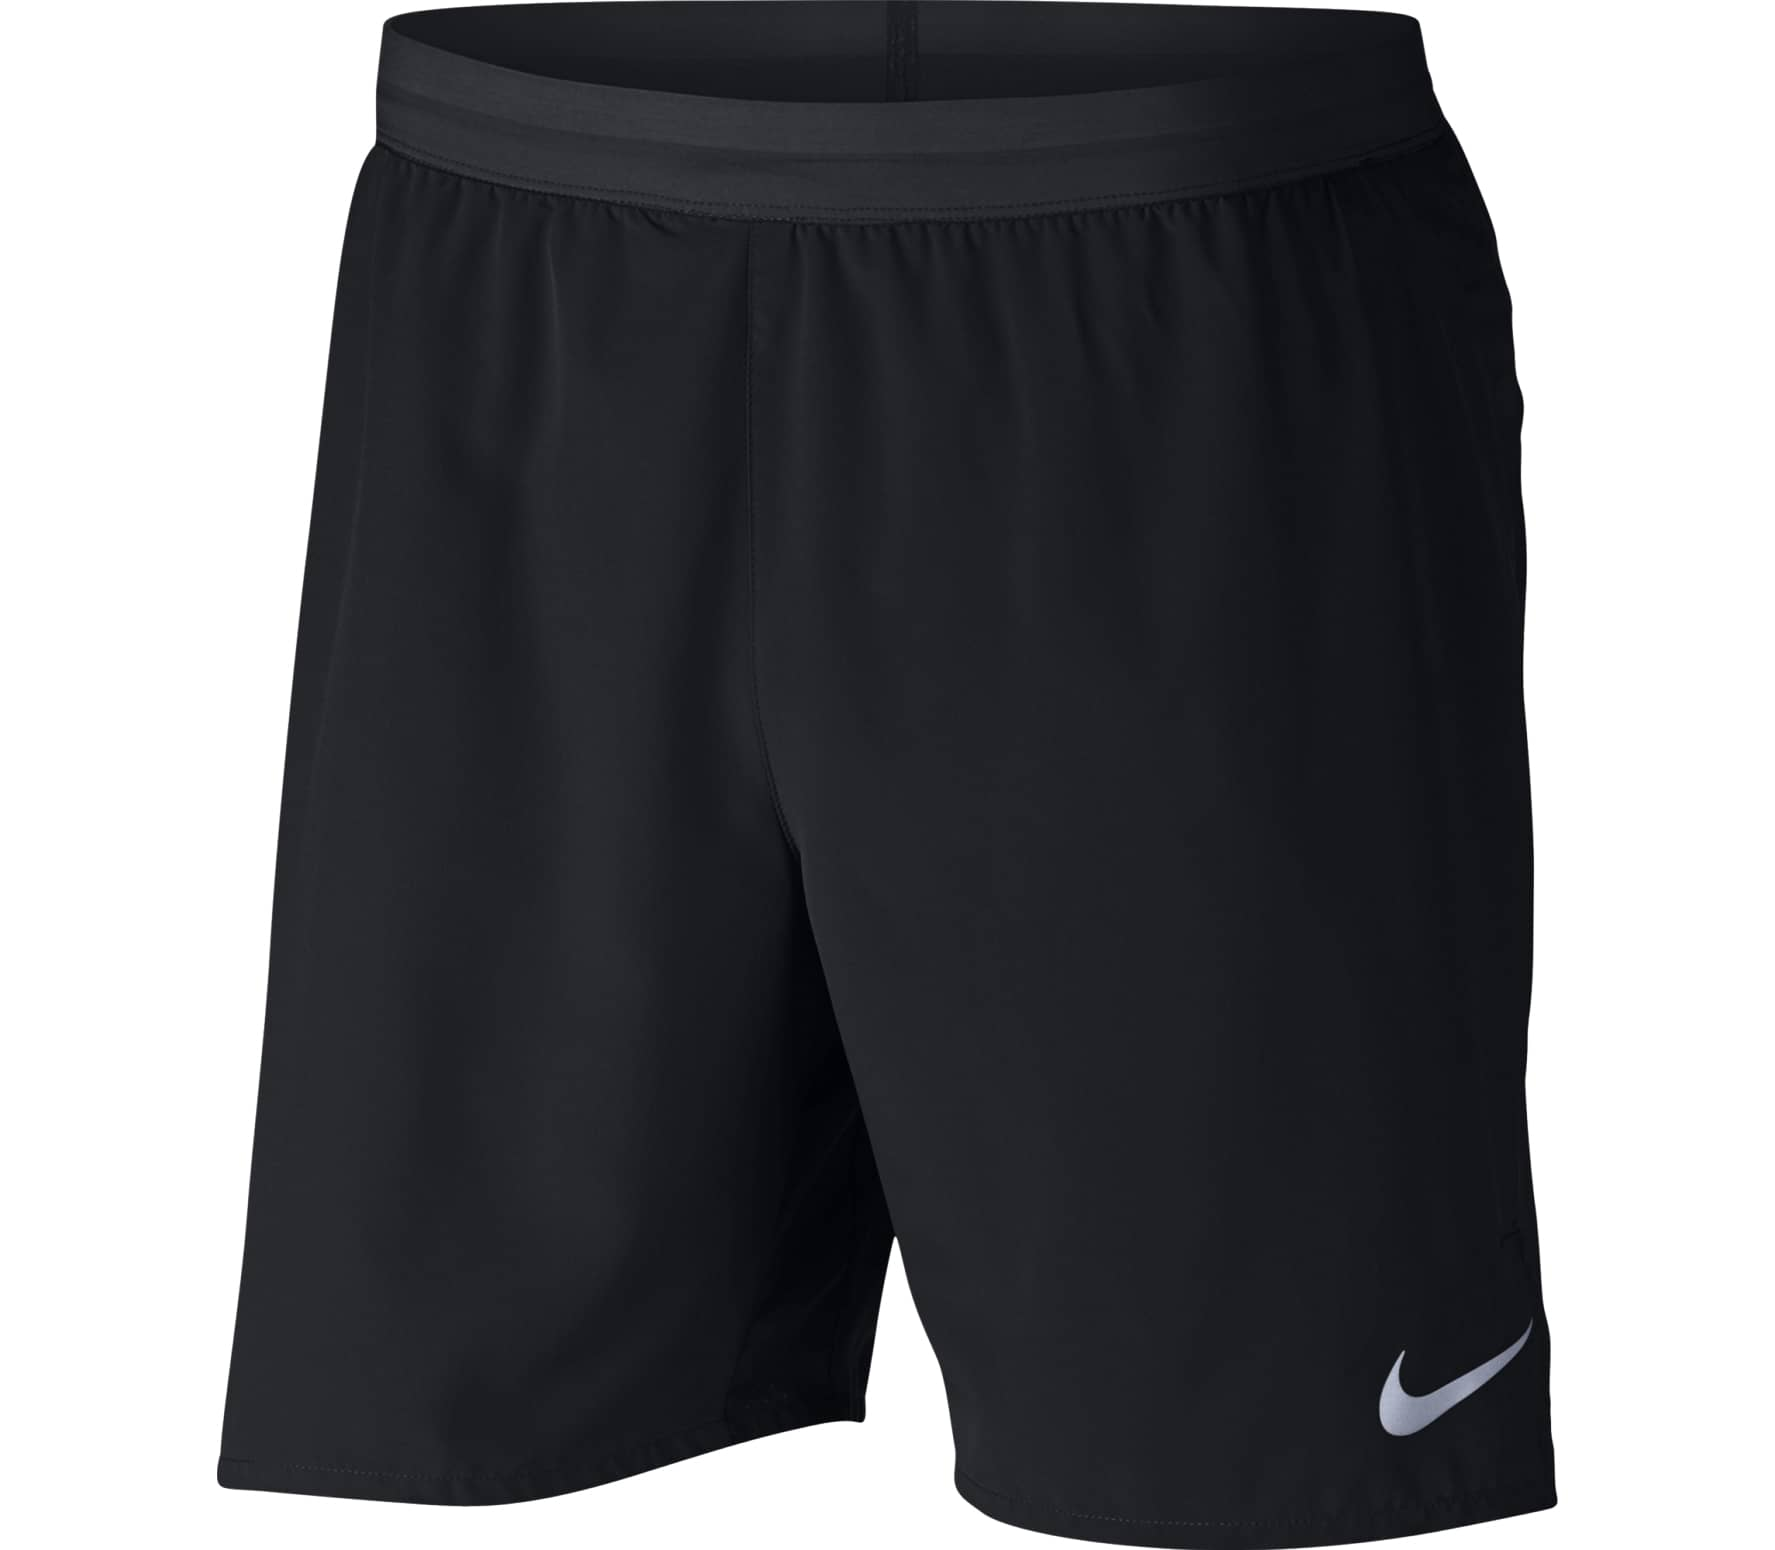 faa30dae9c29 Nike - Distance 7 inch men s running shorts (black) - buy it at the ...